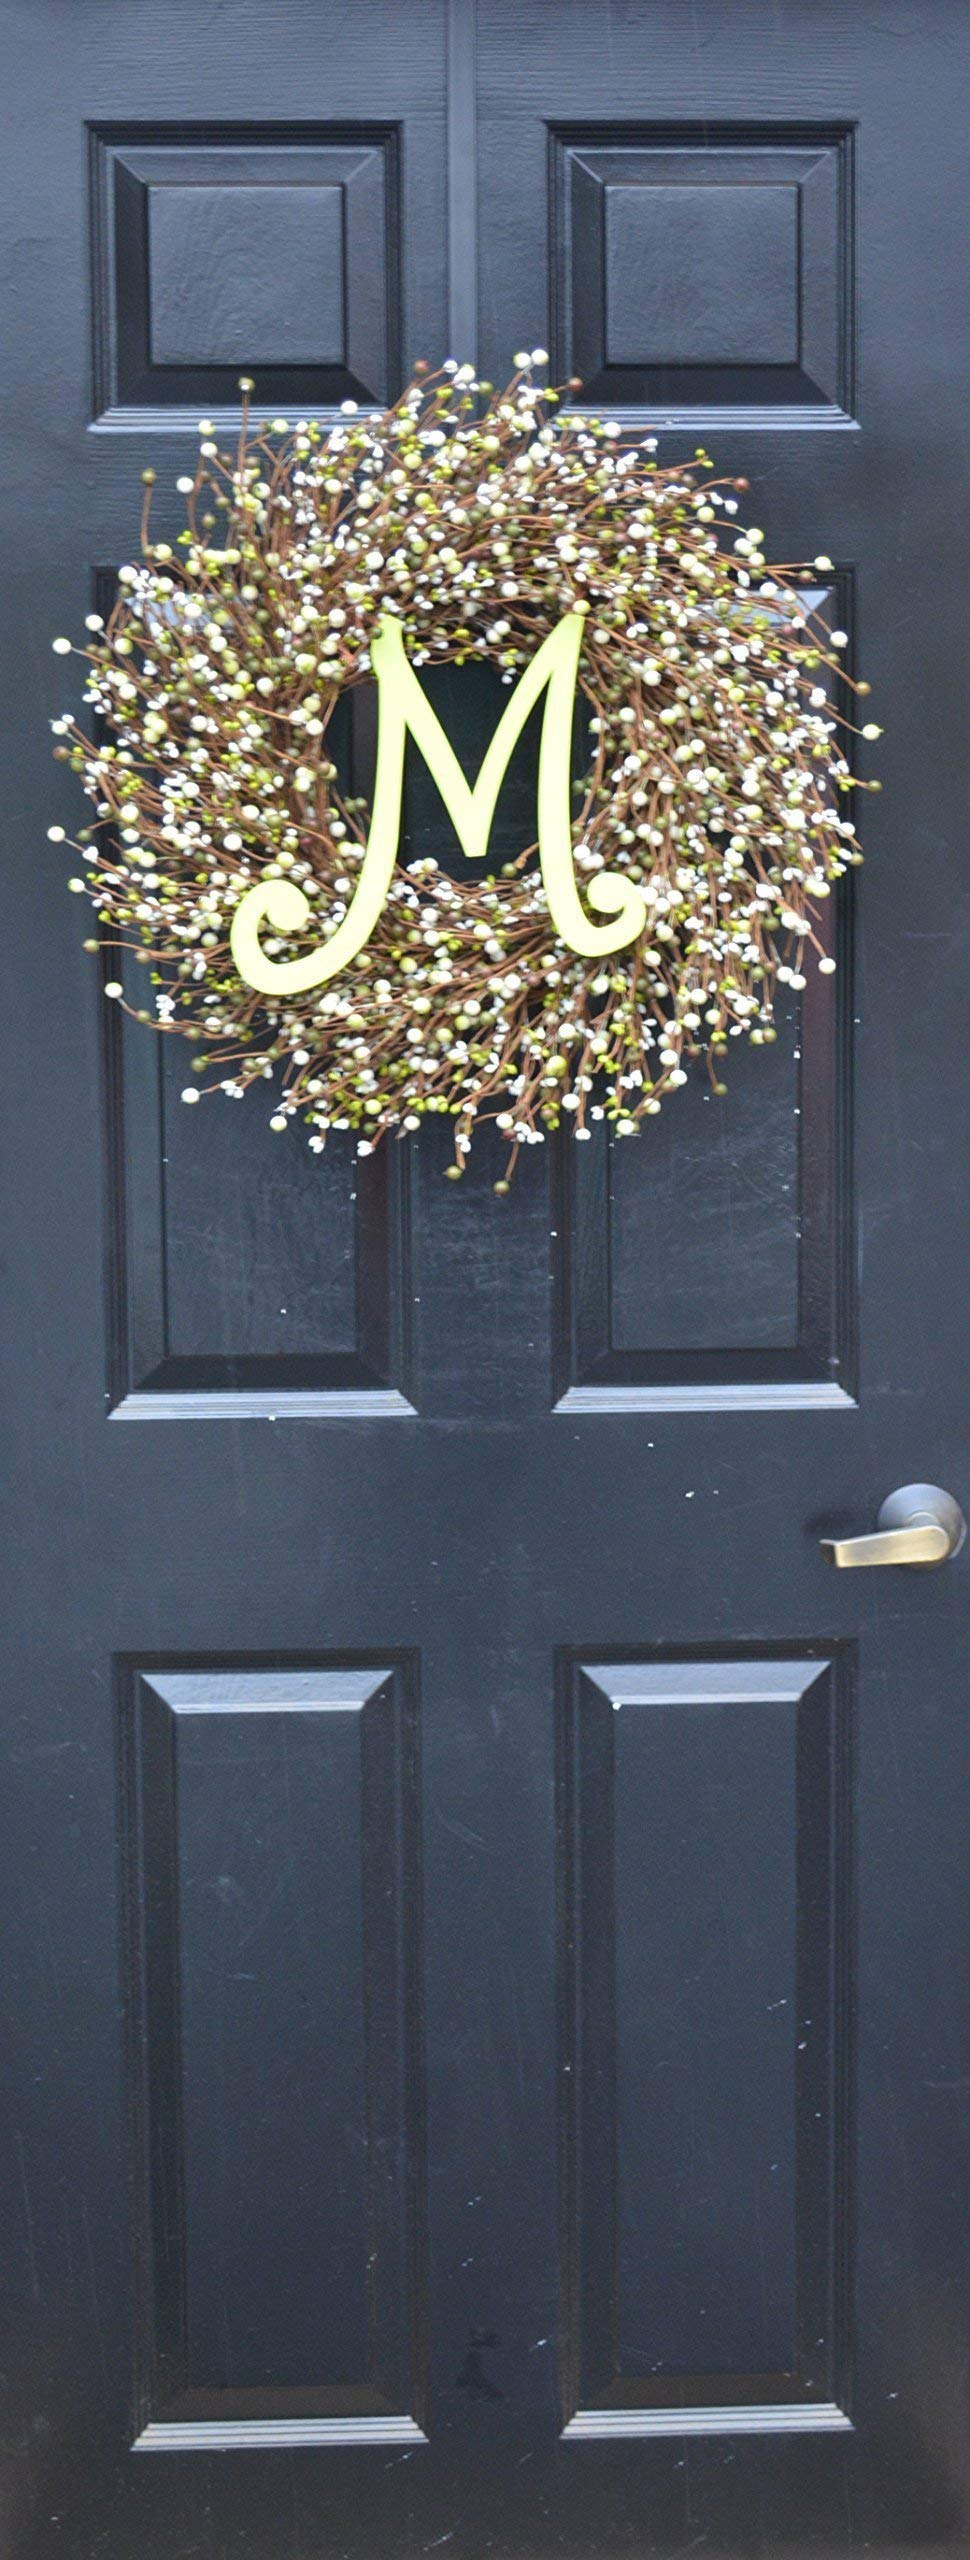 Elegant Holidays Handmade Cream, Green Berry Wreath with Monogram, Front Door Welcome Guests Outdoor Indoor Home Wall Accent Décor Great Spring, Easter, St Patricks Day, Christmas, All Seasons, 18-24 by Elegant Holidays Inc. (Image #2)